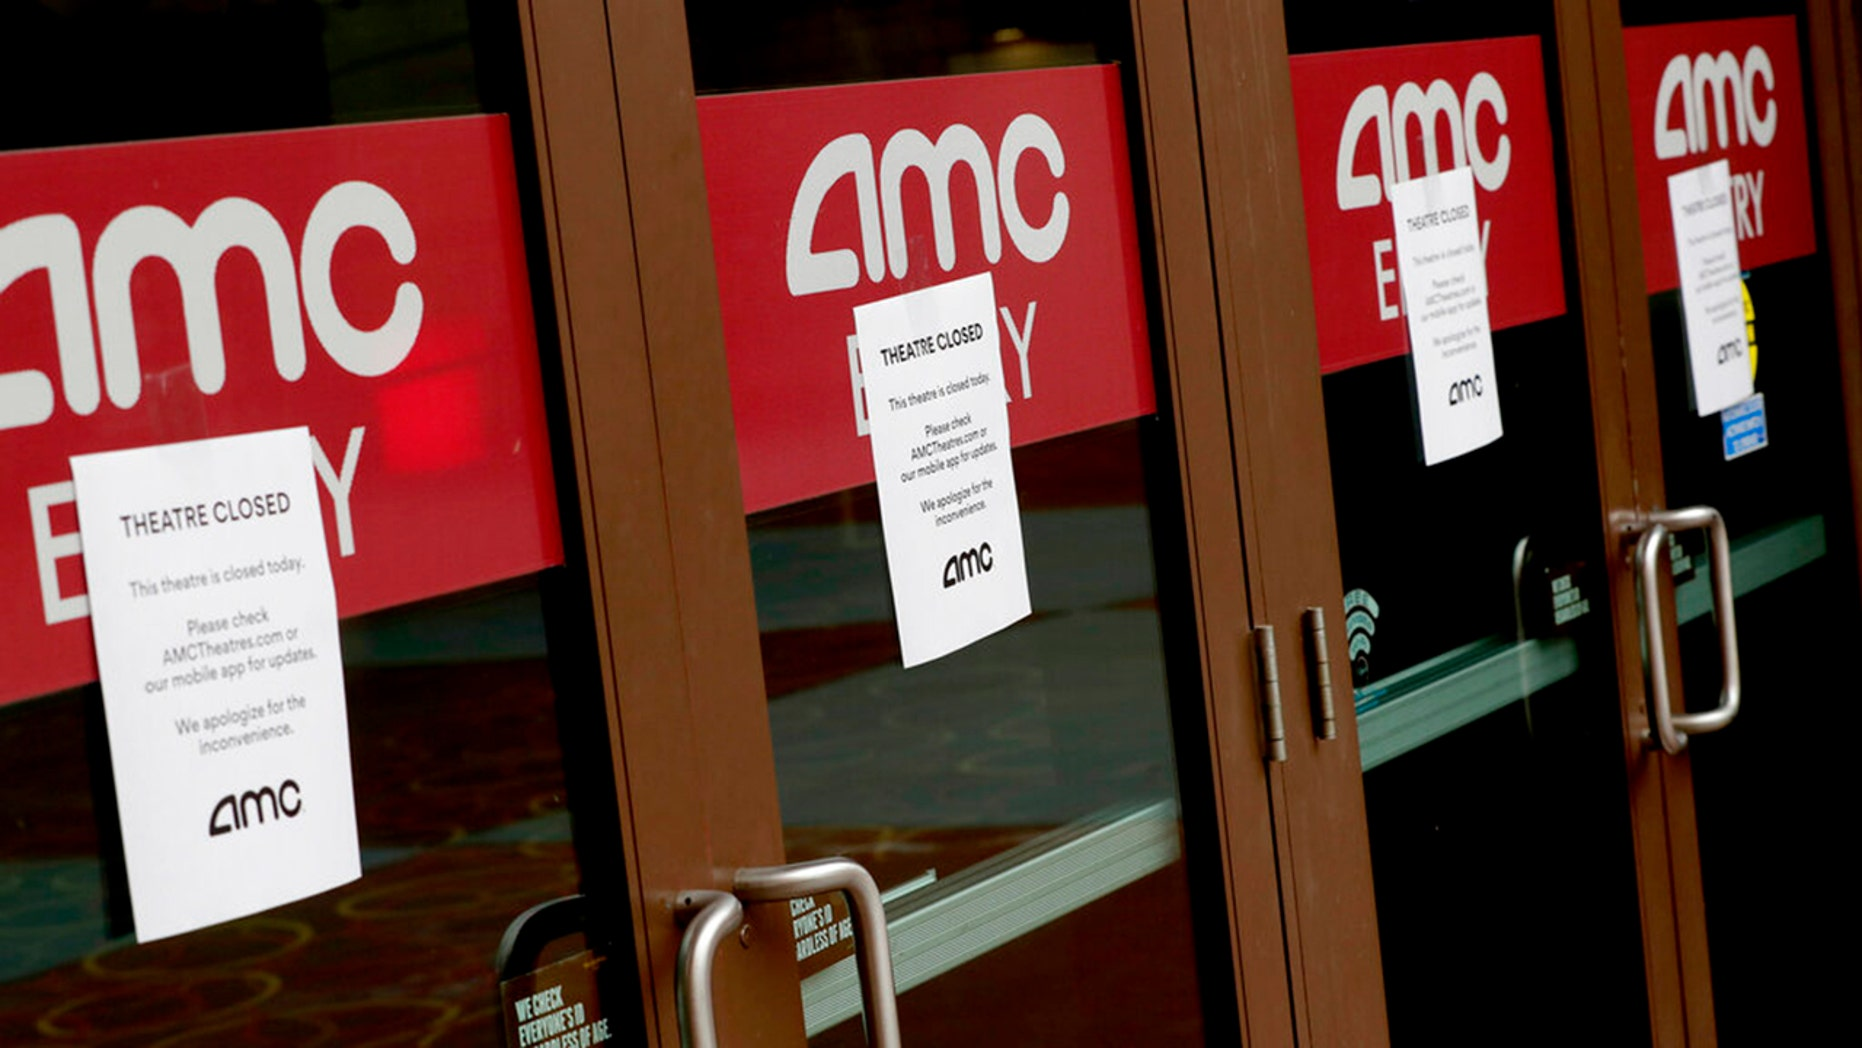 A movie theatre is closed Wednesday, March 18, 2020, in Phoenix due to the coronavirus. Experts say the film industry may have more trouble bounding back than previously thought.  (AP Photo/Matt York)